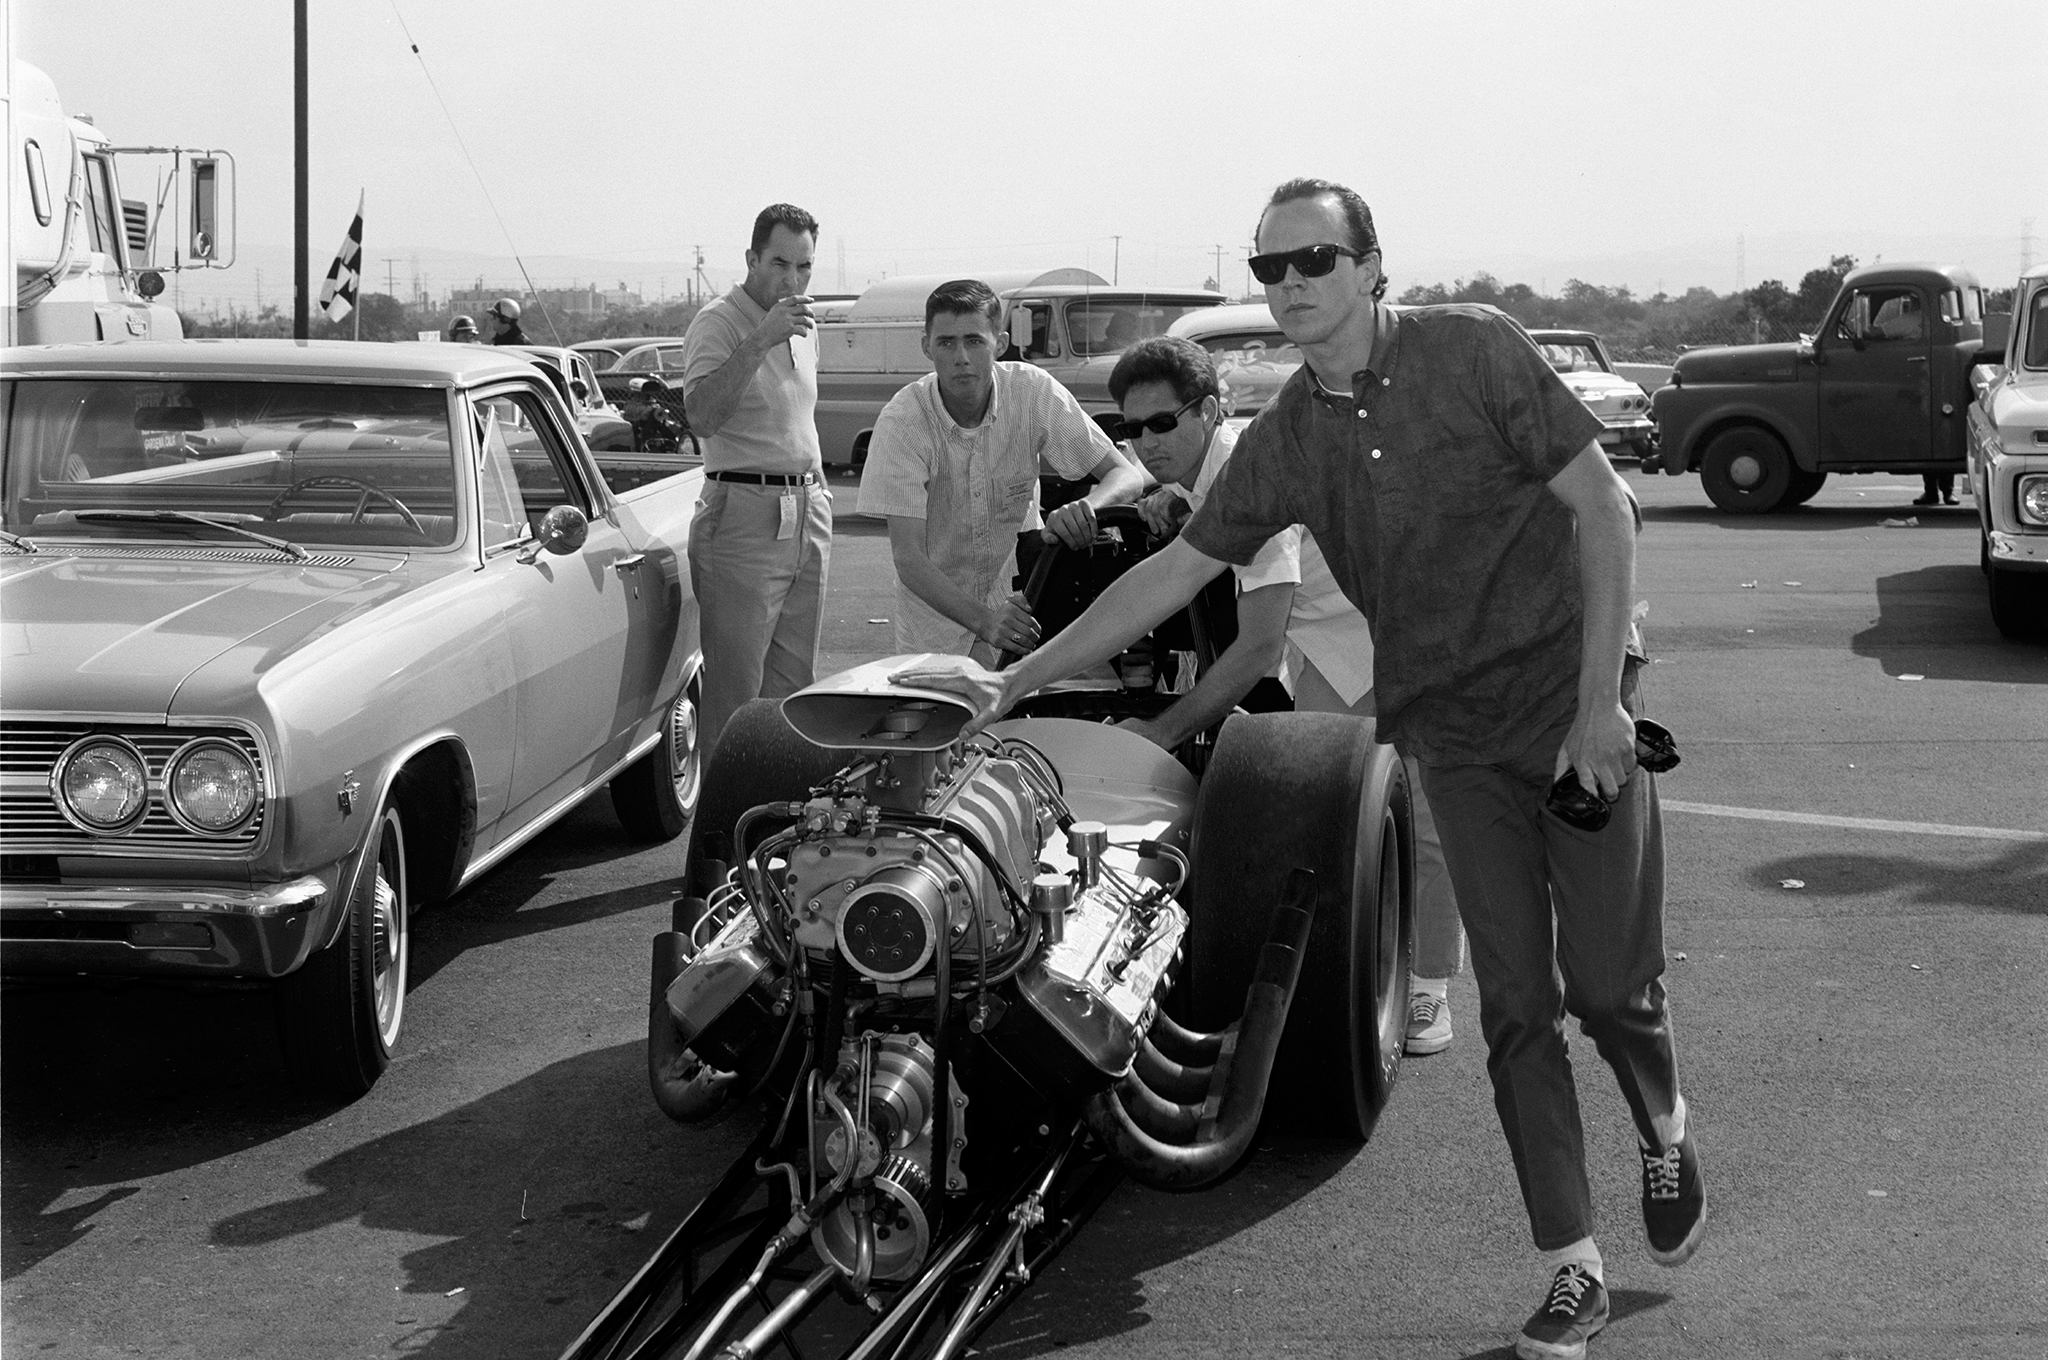 Skinner (in front) pushing the Surfers dragster. Driver Mike Sorokin just behind.